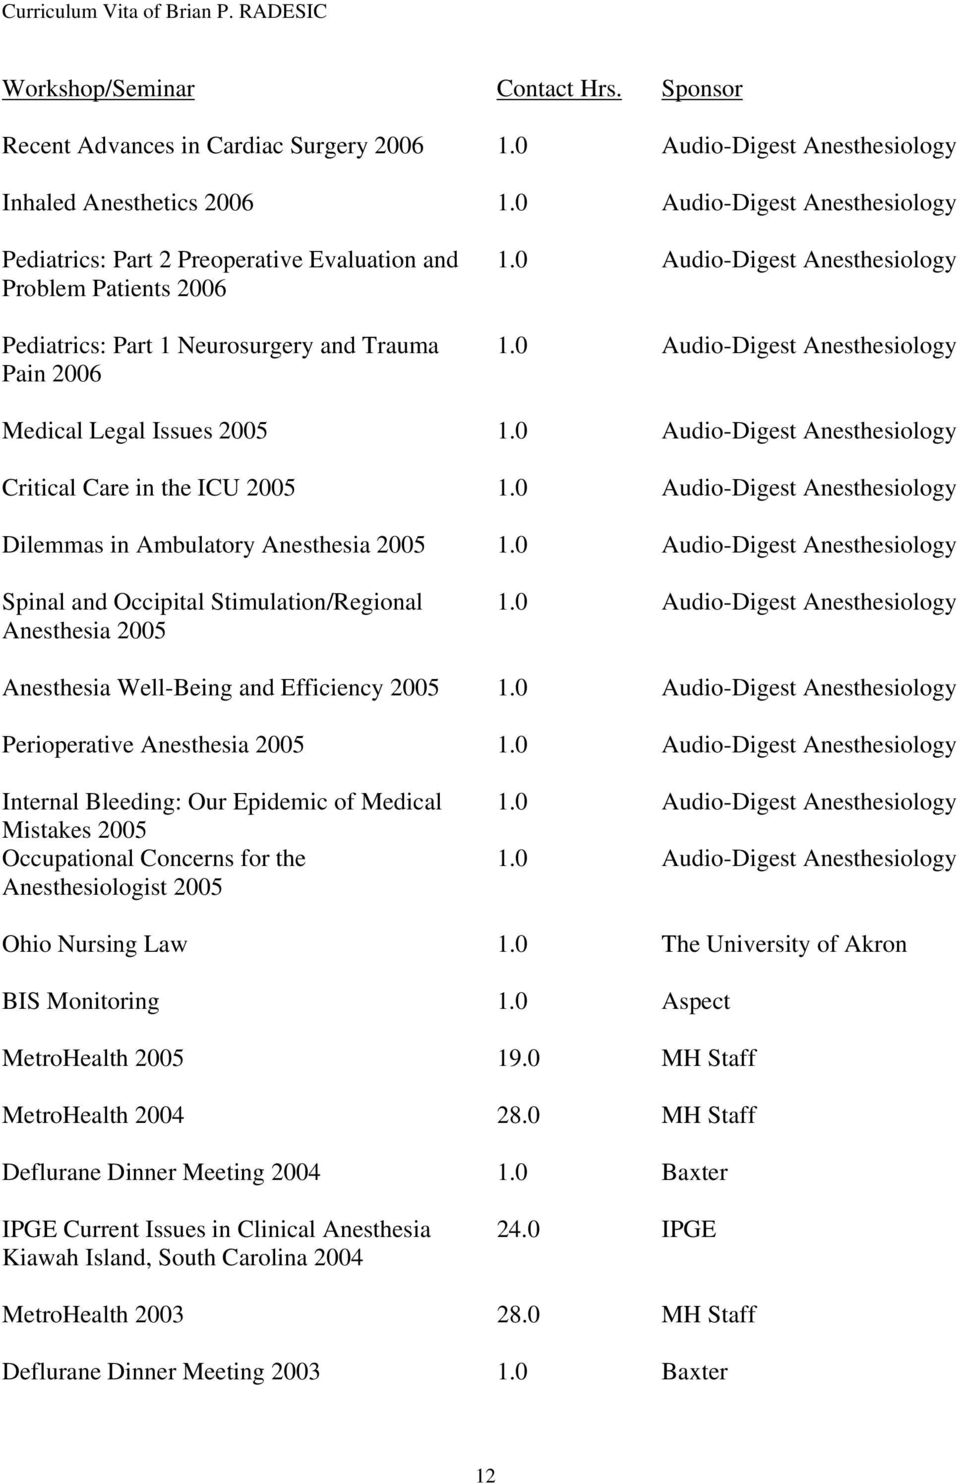 Medical Legal Issues 2005 Critical Care in the ICU 2005 Dilemmas in Ambulatory Anesthesia 2005 Spinal and Occipital Stimulation/Regional Anesthesia 2005 Anesthesia Well-Being and Efficiency 2005